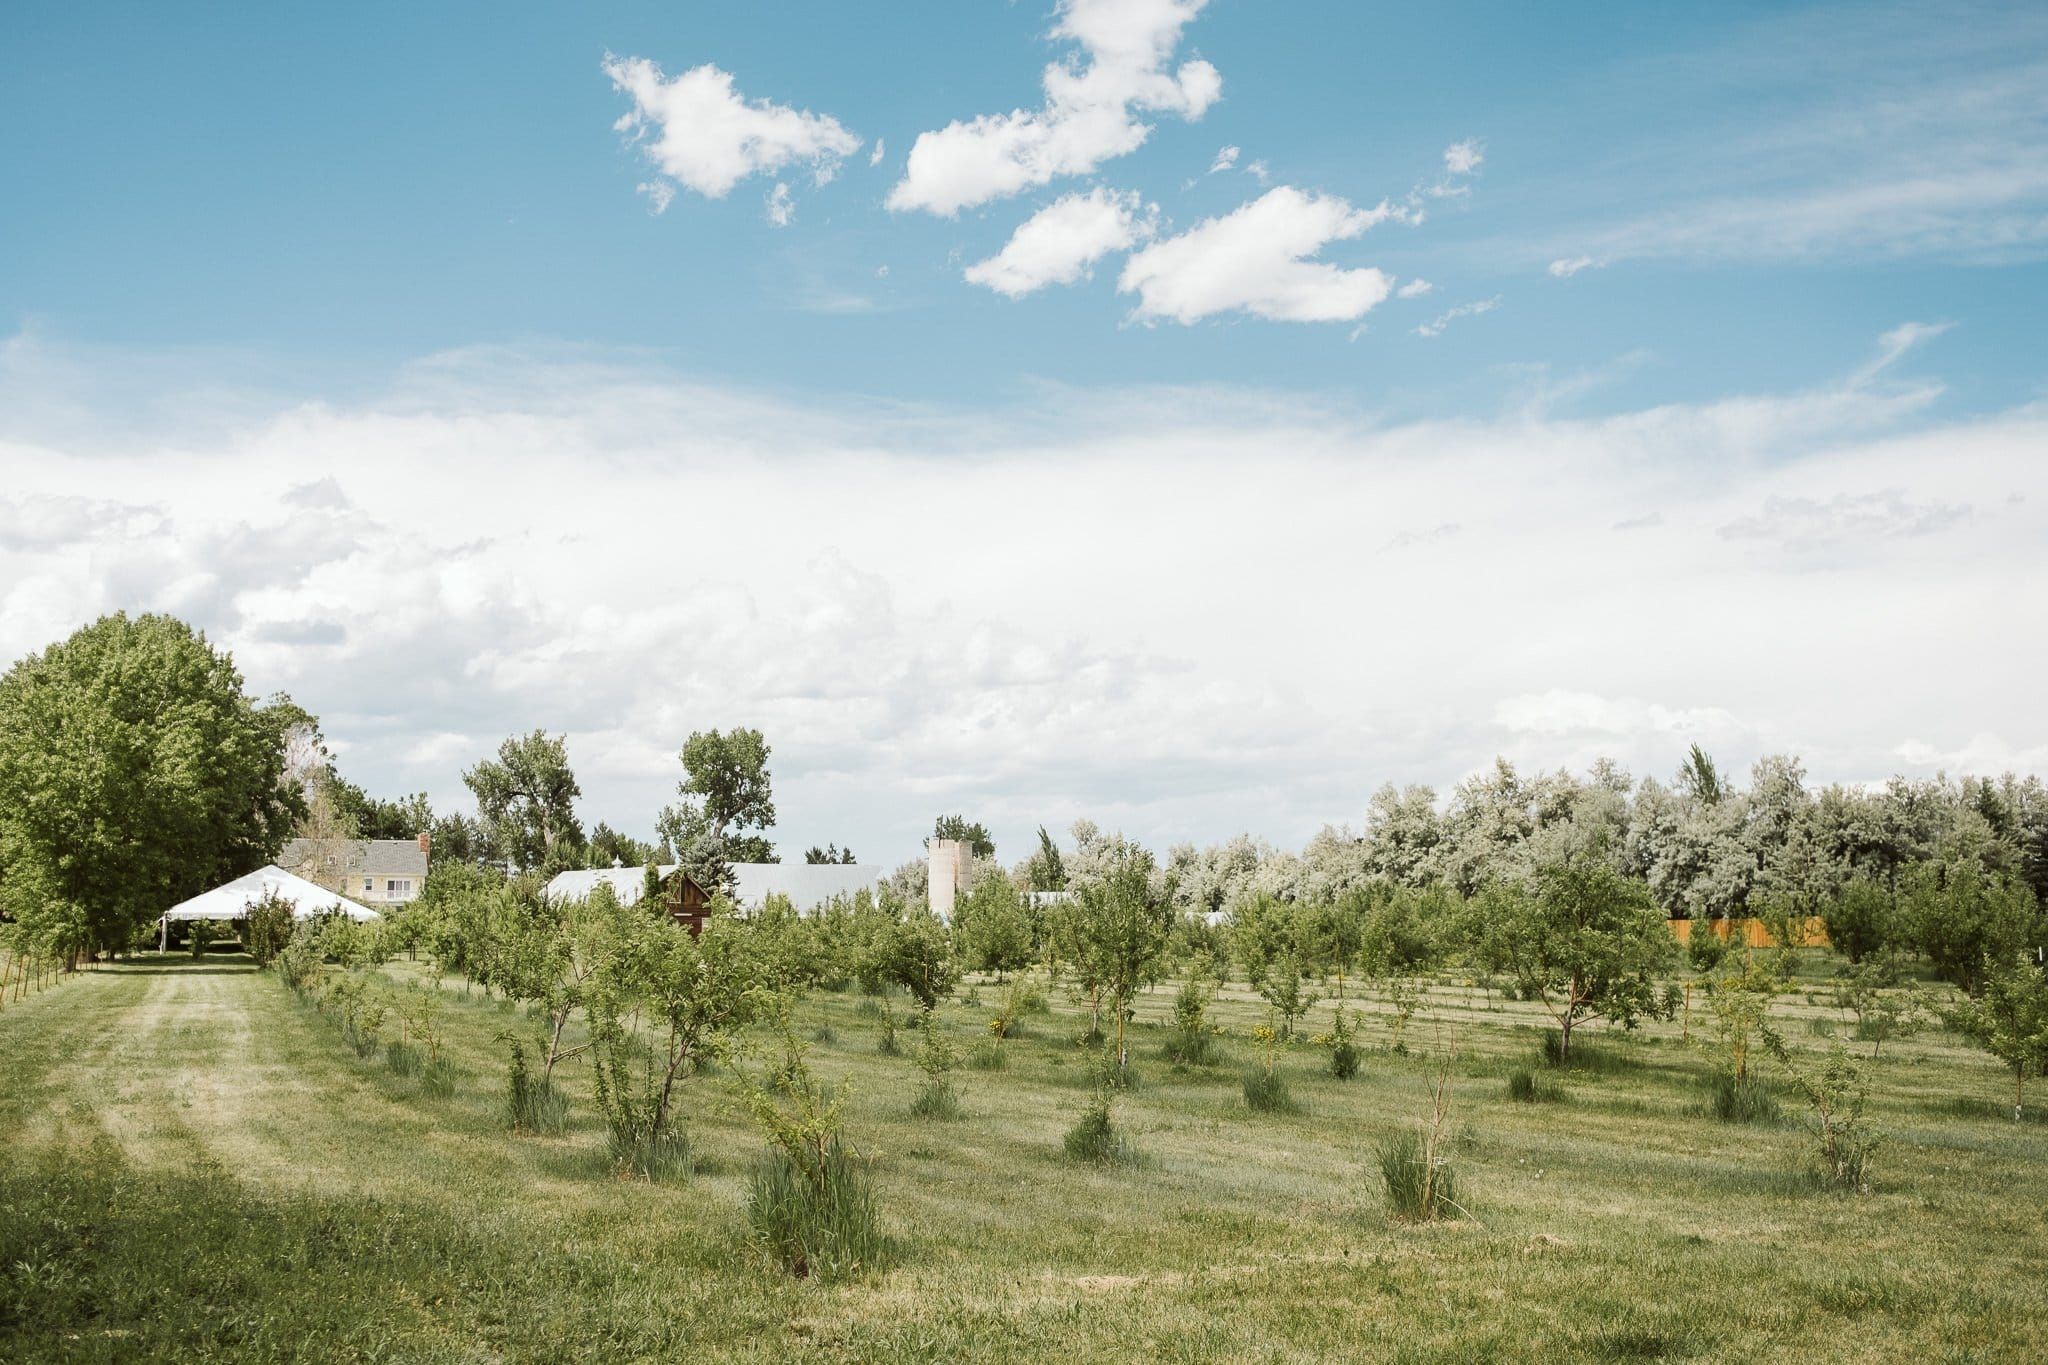 ya-ya-farm-orchard-lyons-wedding-venue-11